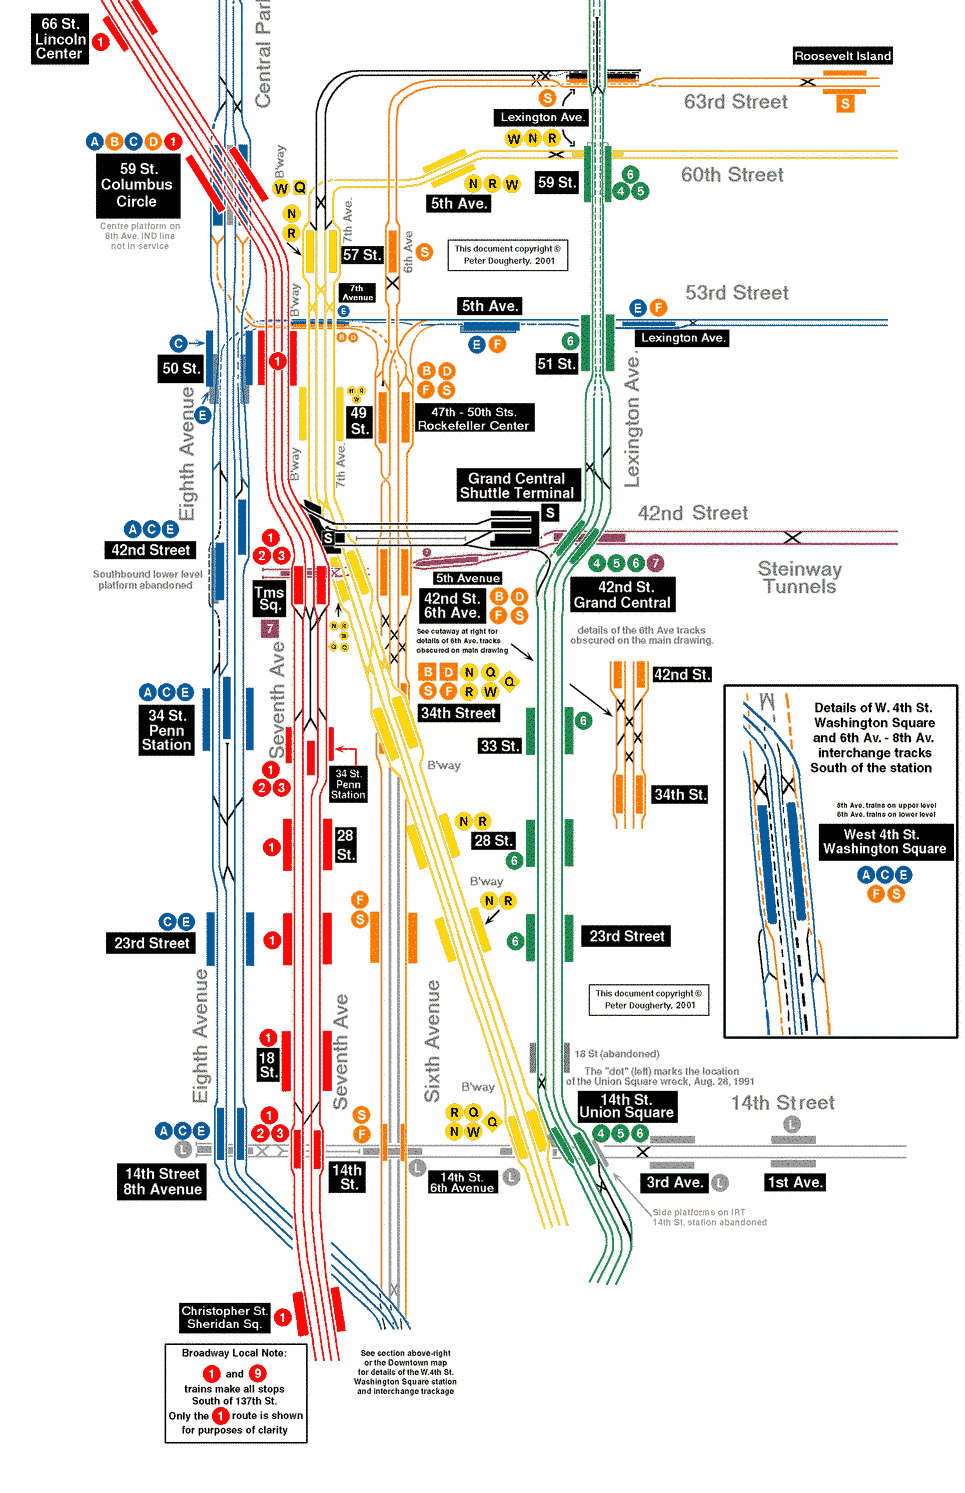 Map Of Times Square Subway Station